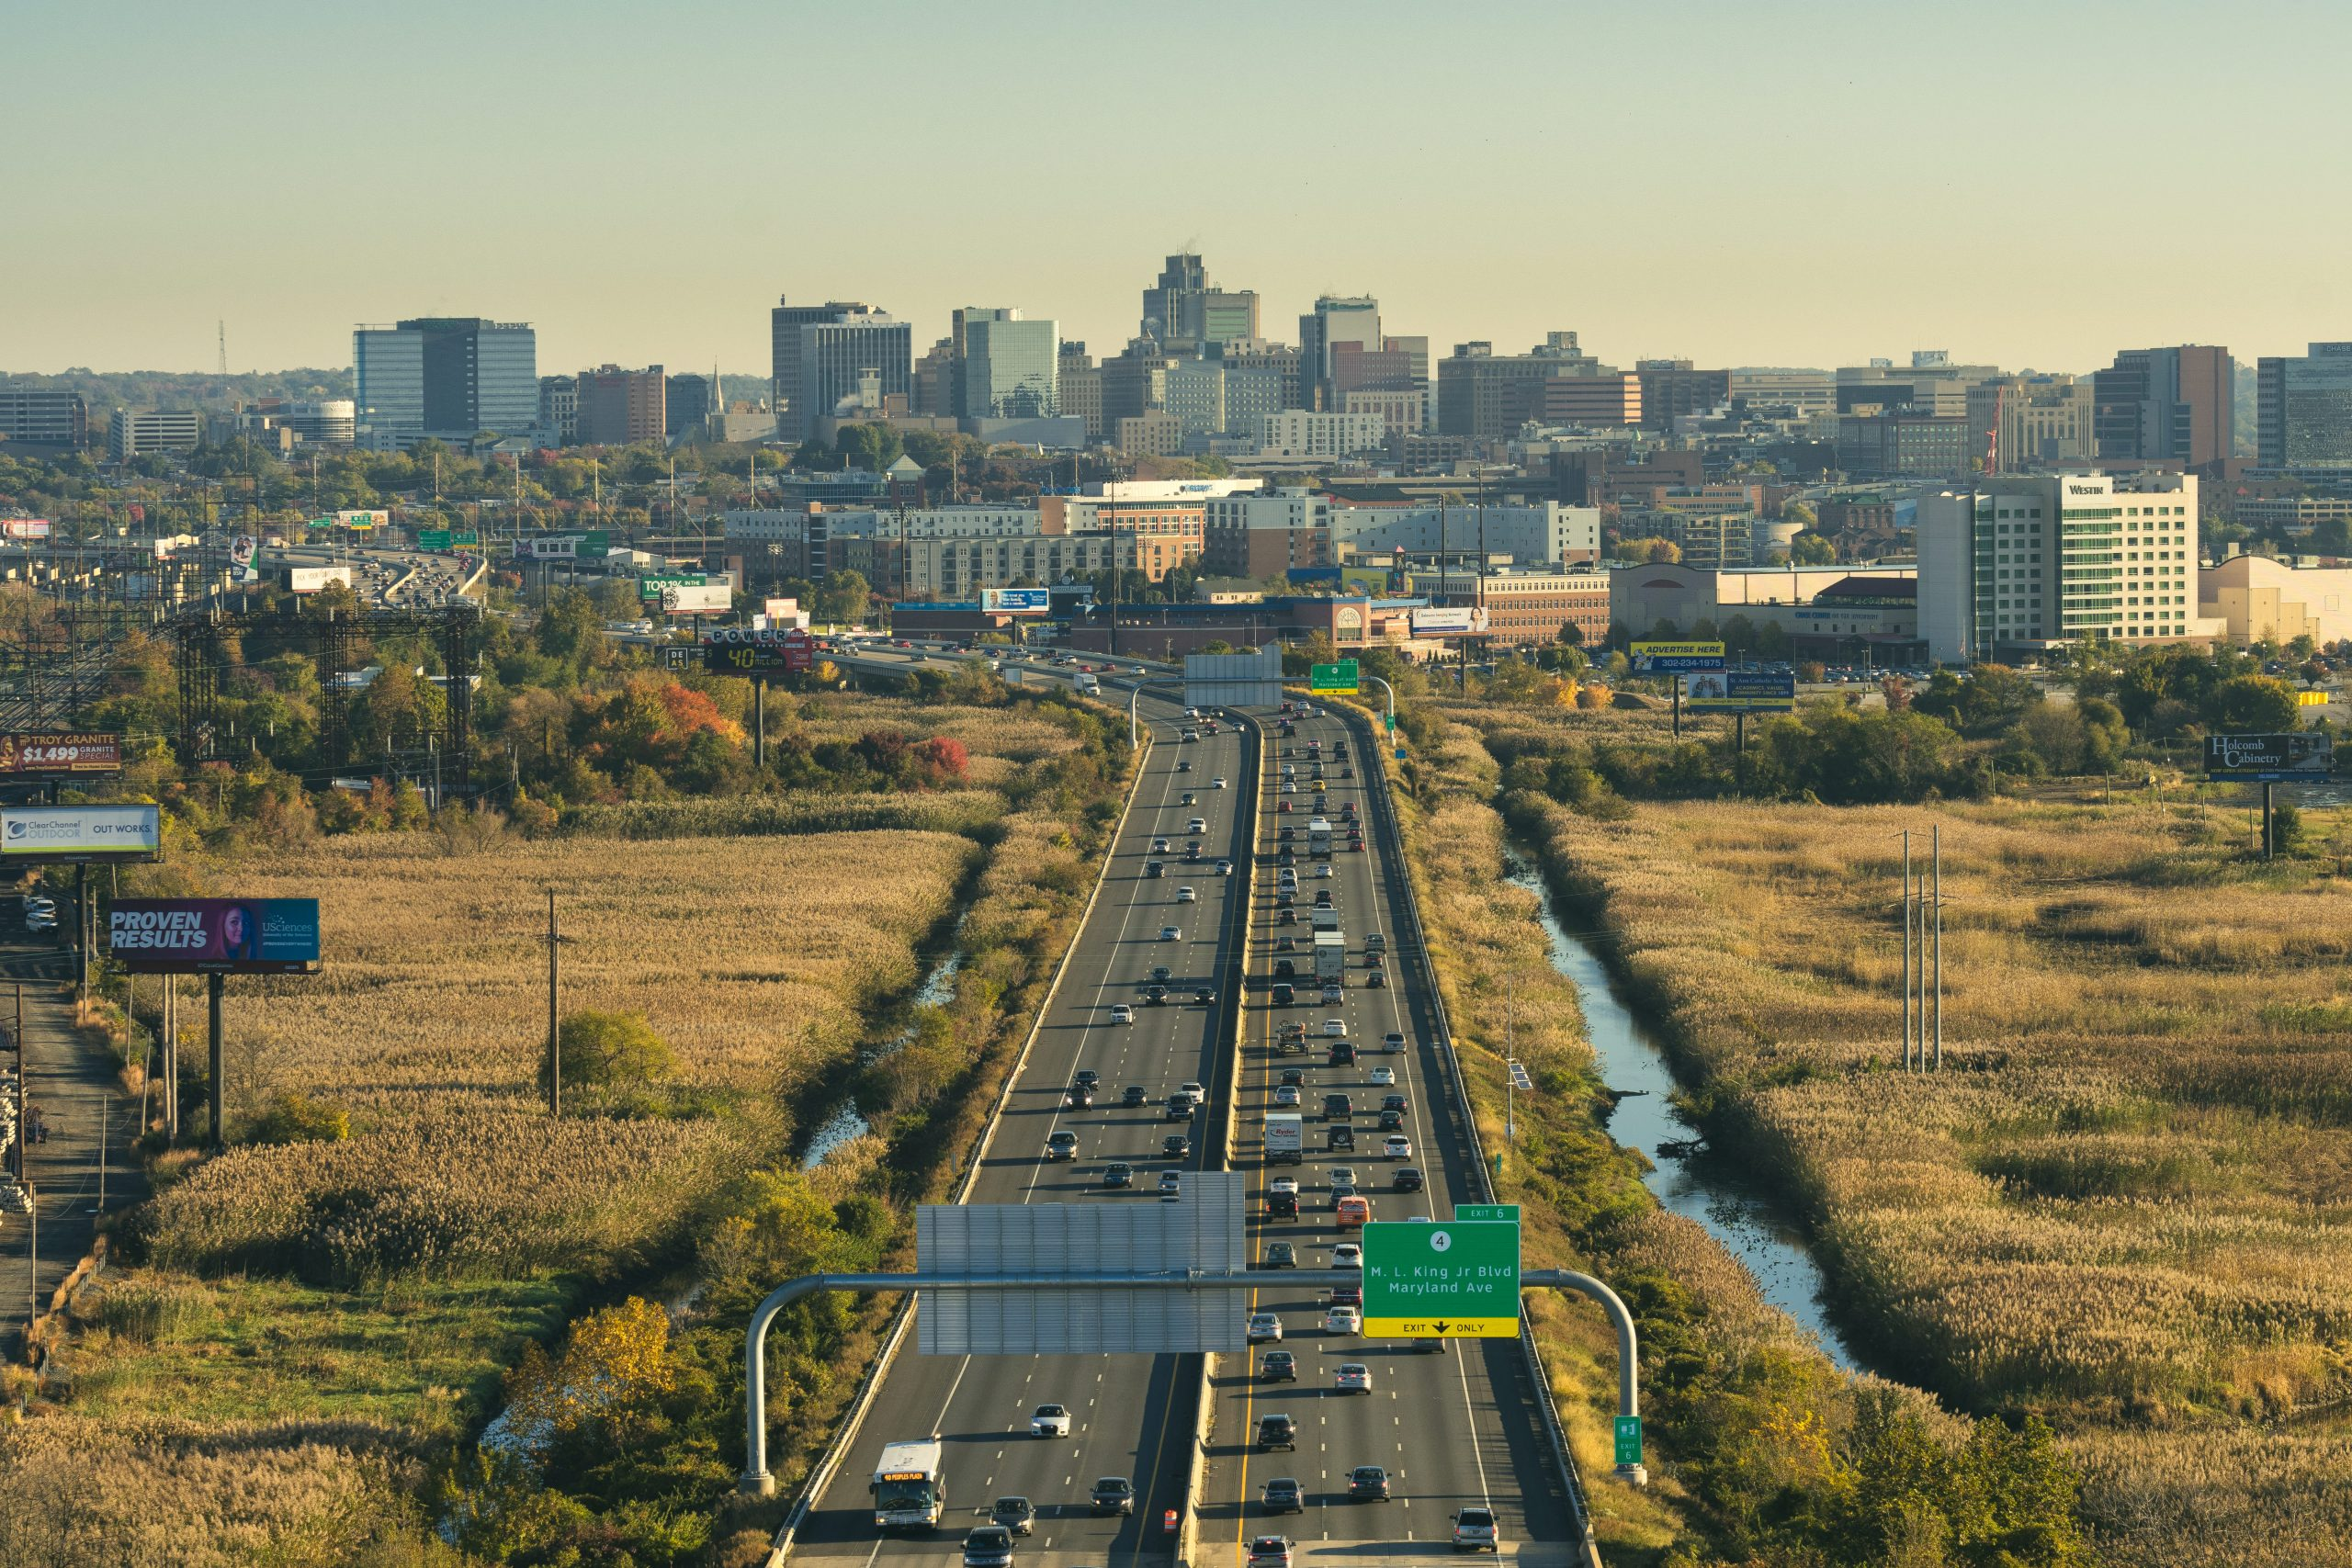 Aerial view of highway leading into city landscape of Wilmington, DE